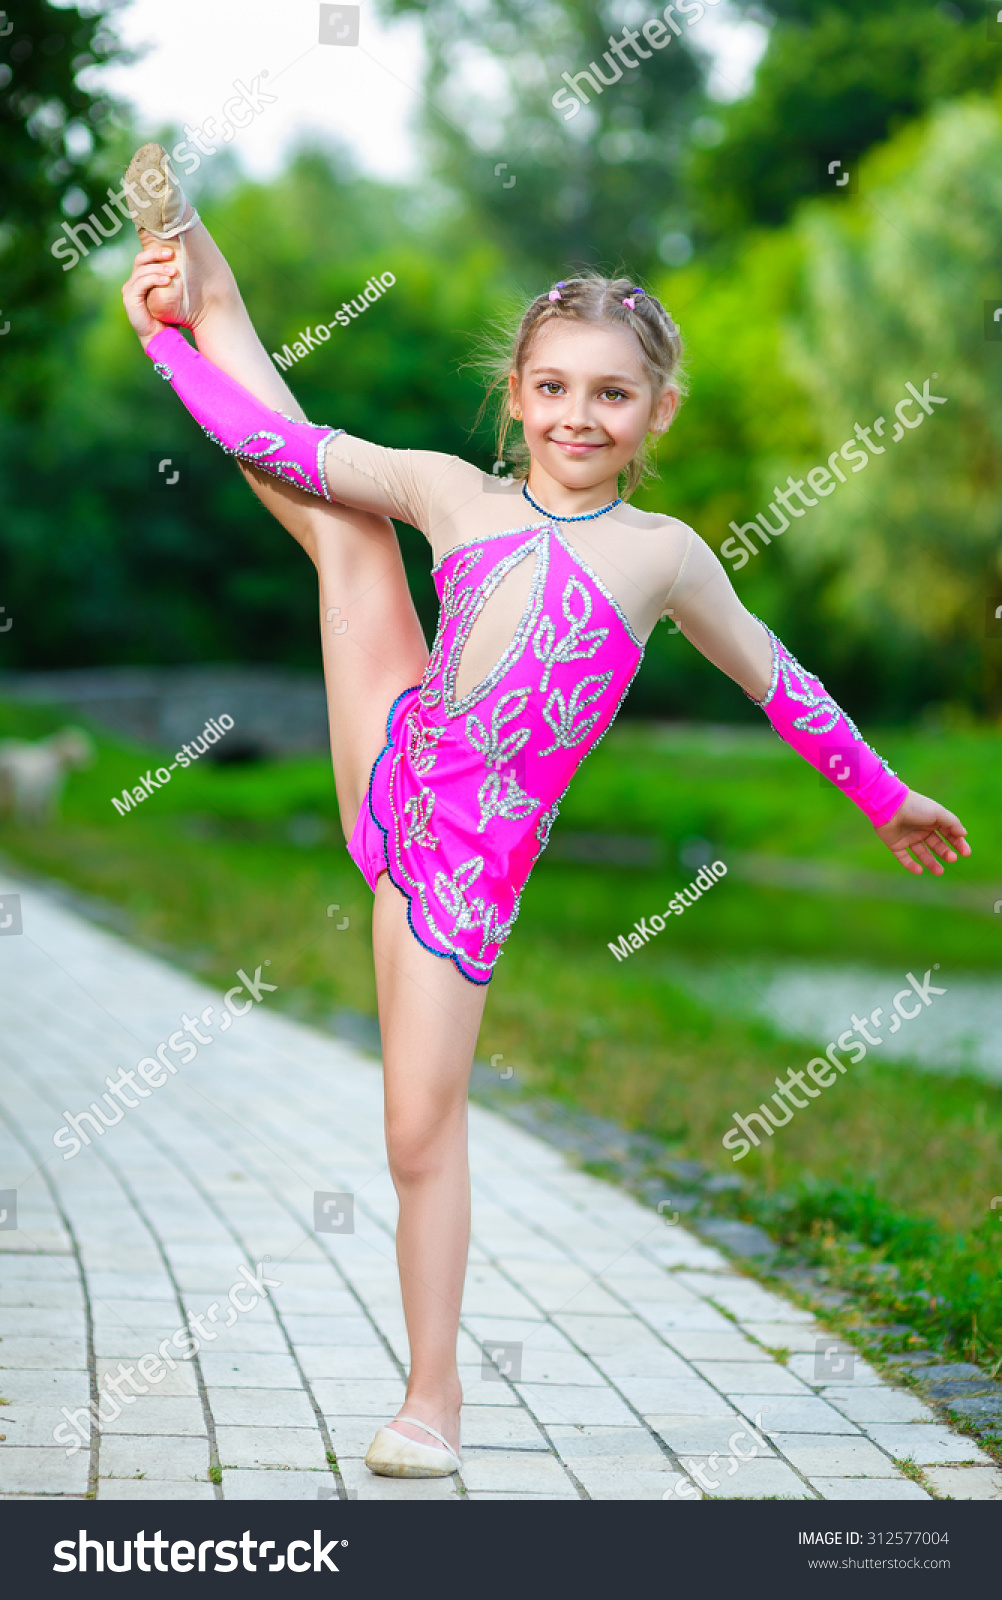 cute naked girls doing gymnastics